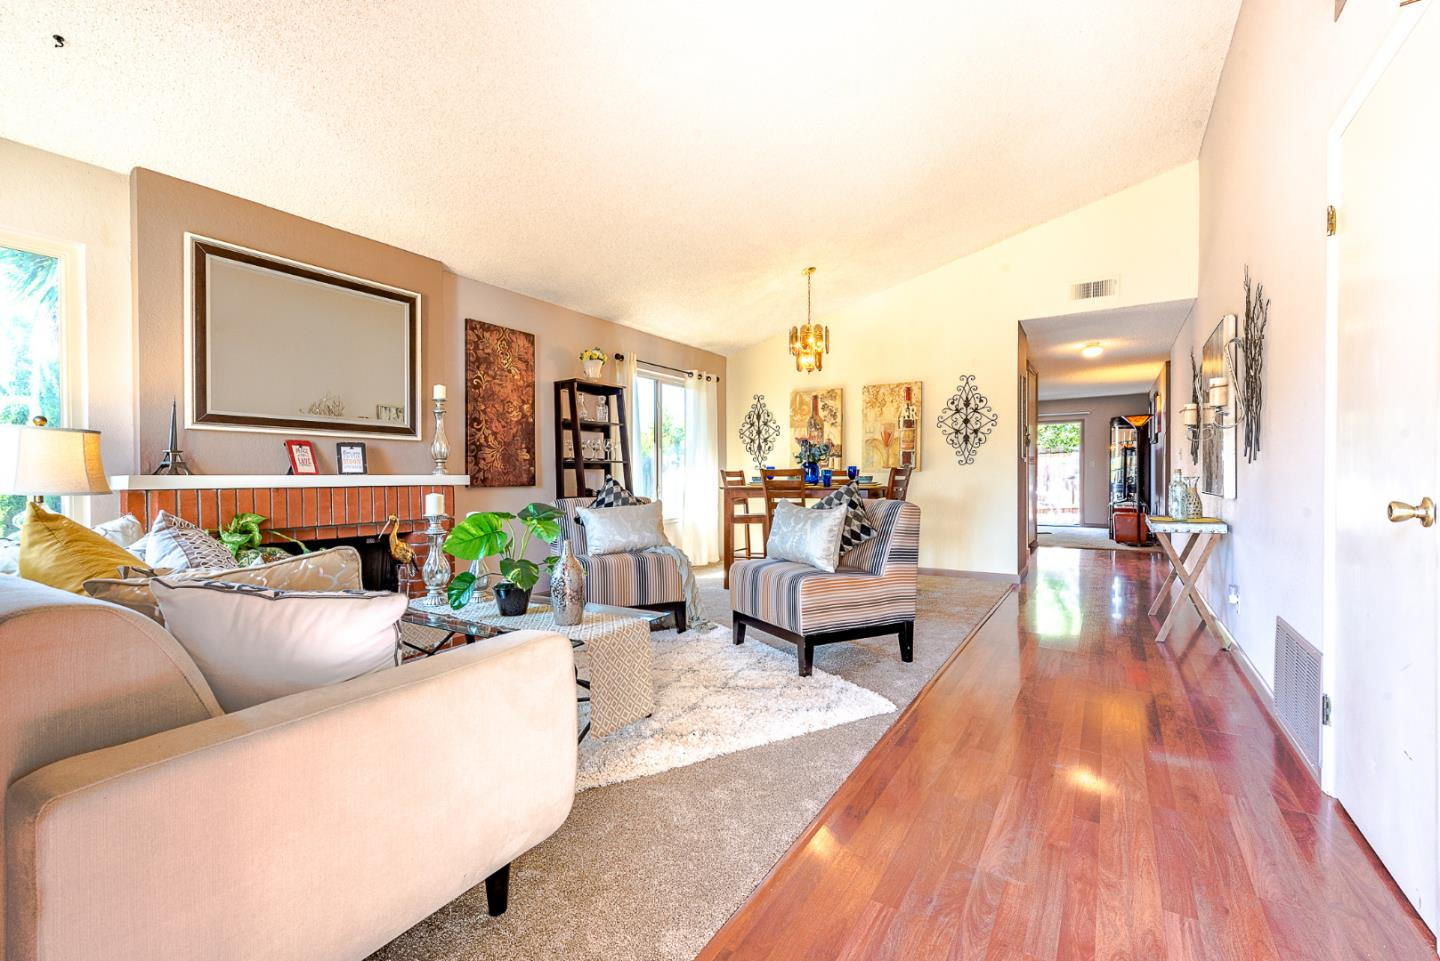 Additional photo for property listing at 32801 Orick Street  Union City, California 94587 United States